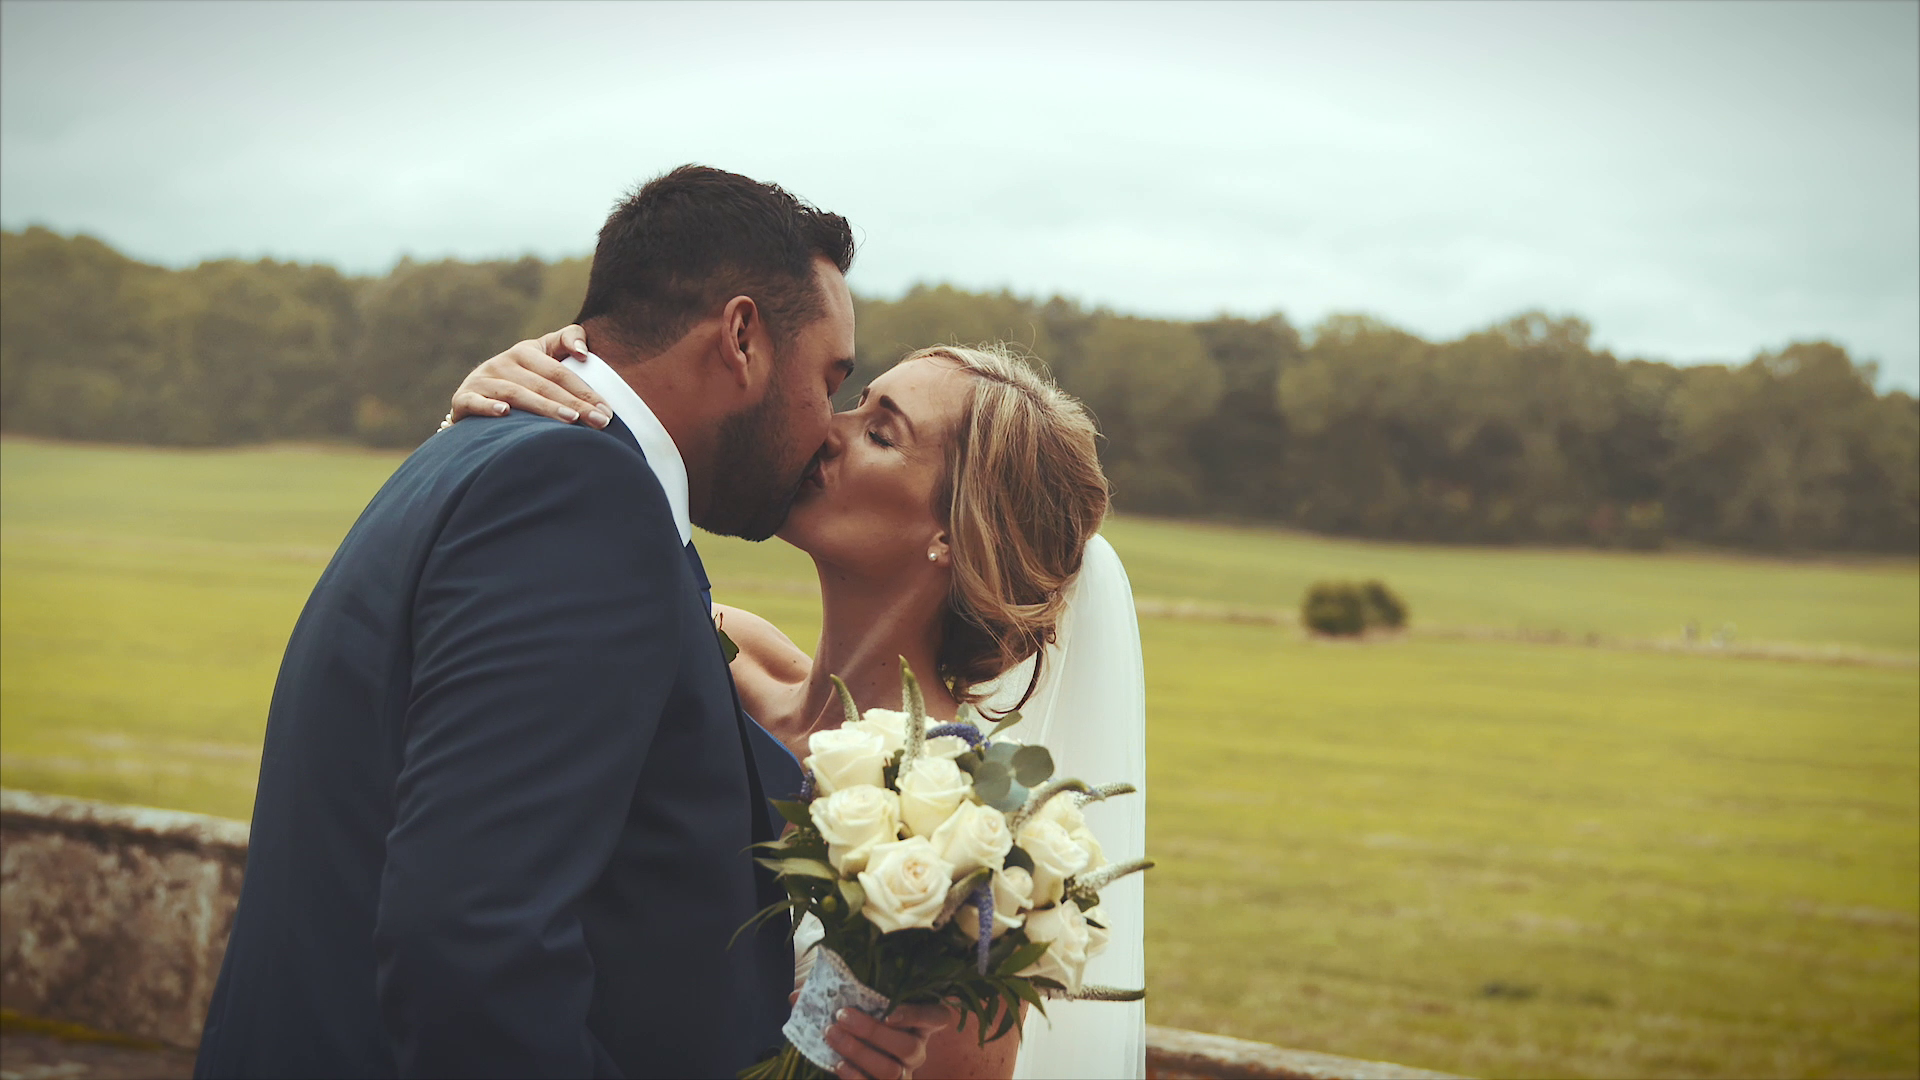 """Alison & Armon - """"We have just had the absolute pleasure of watching our wedding video and cannot put into words how grateful we are for all your hard work on the day. It is just perfect, we're blown away with it to be honest!! You caught such special moments and some hilarious parts of the day...Thank you again so much for helping us to relive the best day ever, we're a bit emotional!"""""""